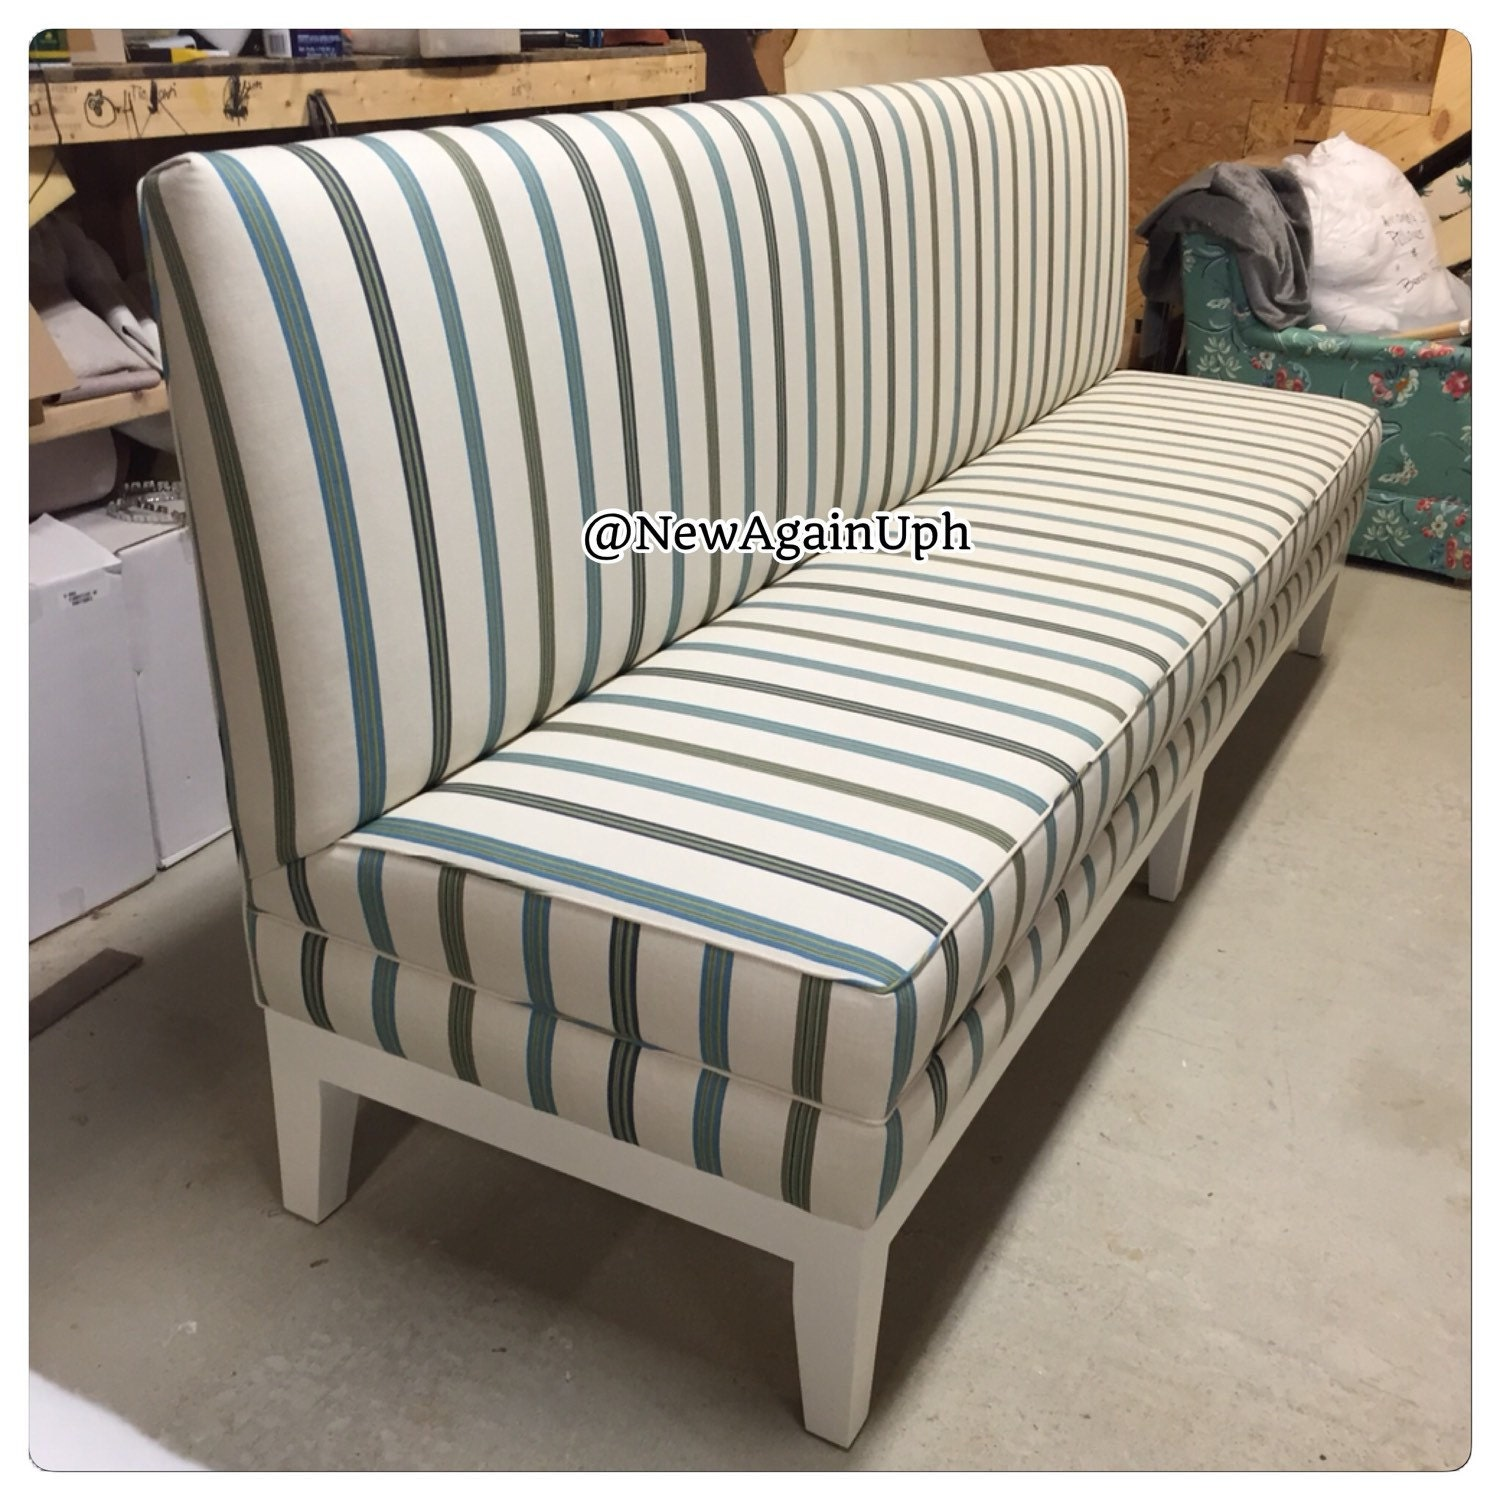 Upholstered Dining Benches: Kitchen Bench Custom Bench Upholstered Bench By NewAgainUph